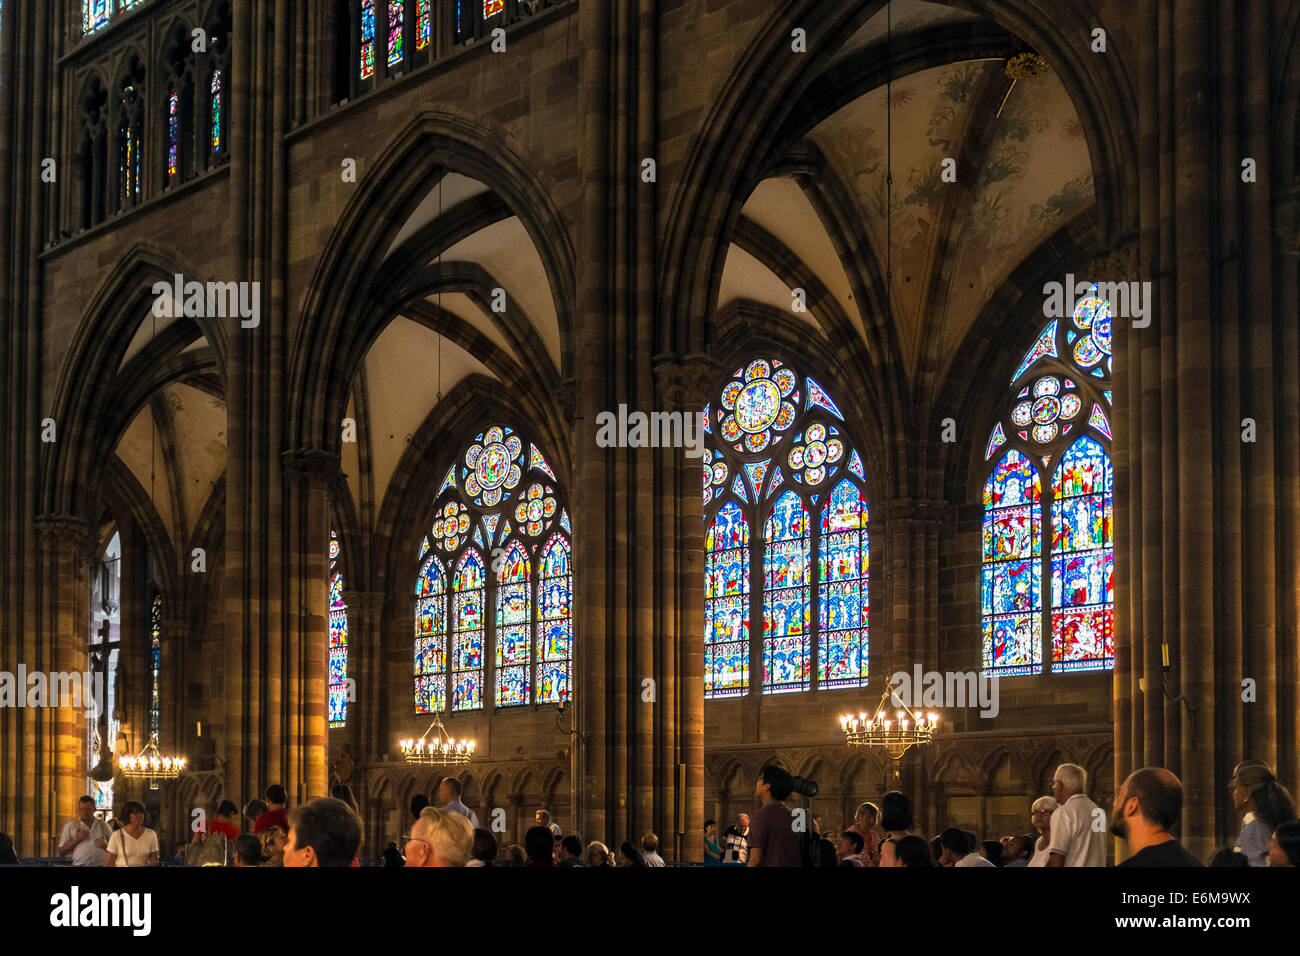 Stained Glass Windows Notre Dame Gothic Cathedral 14th Century Strasbourg Alsace France